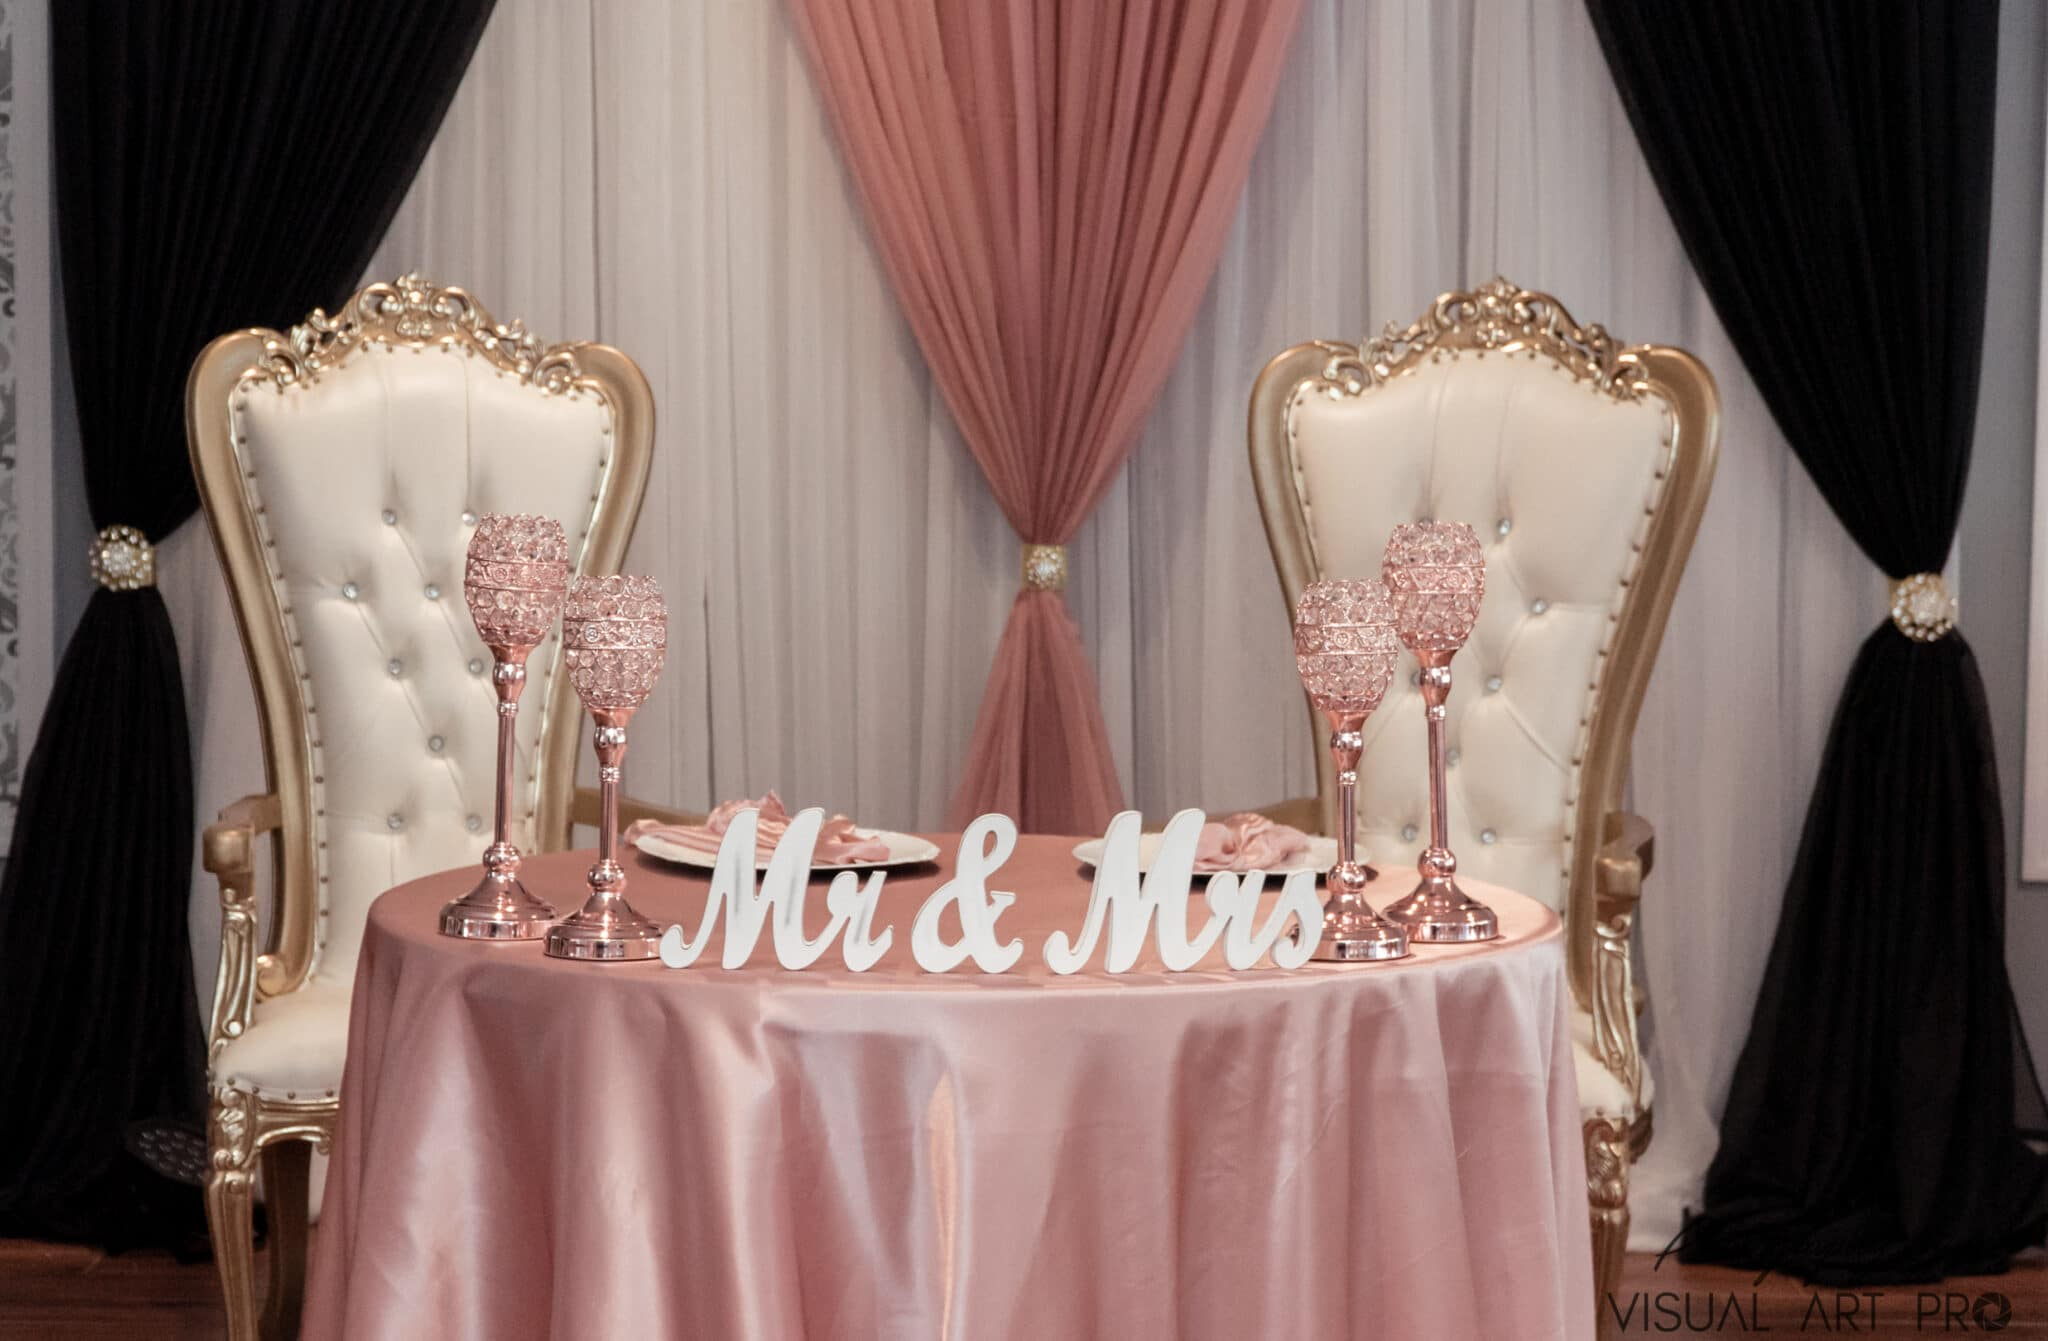 Mr & Mrs pink and white head table